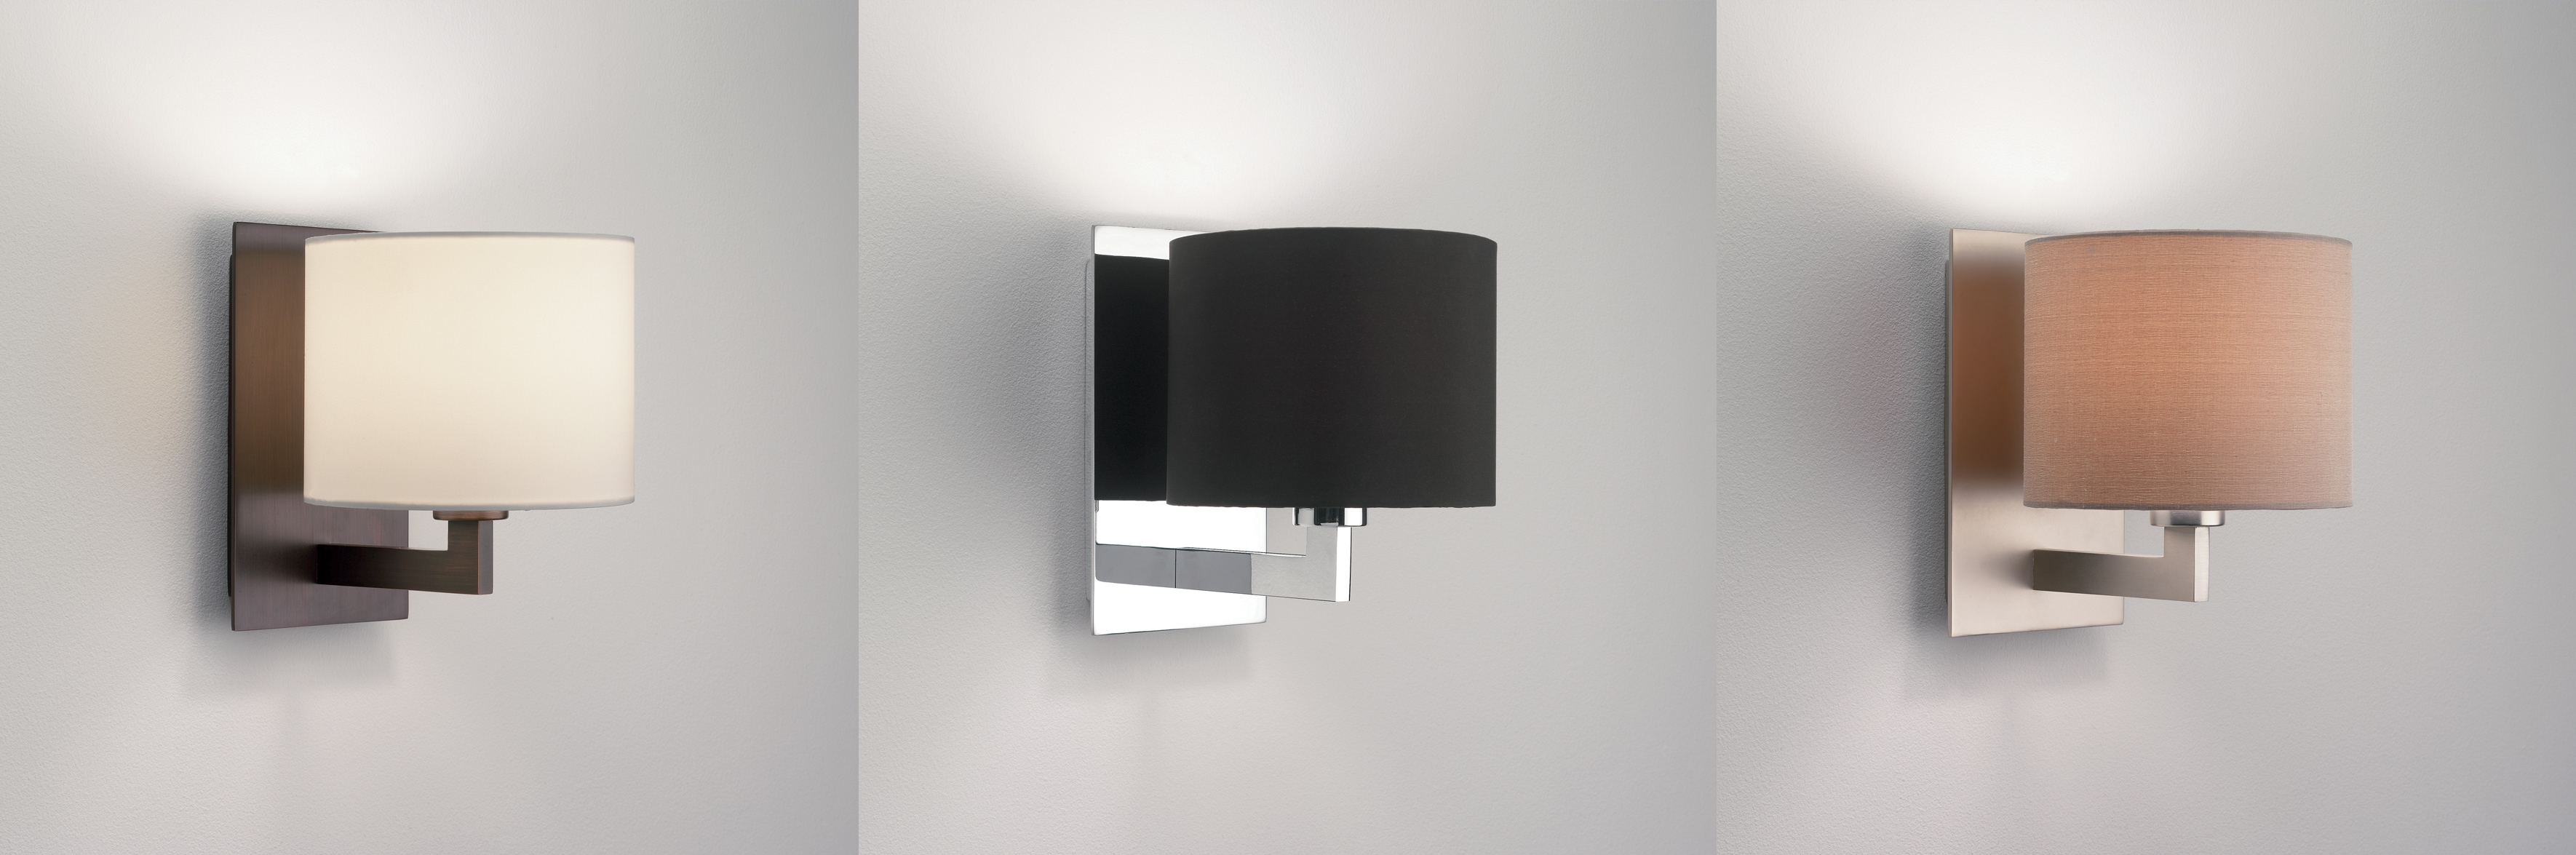 Astro Olan lampshade wall light 60W E14 chrome nickel bronze shade options eBay